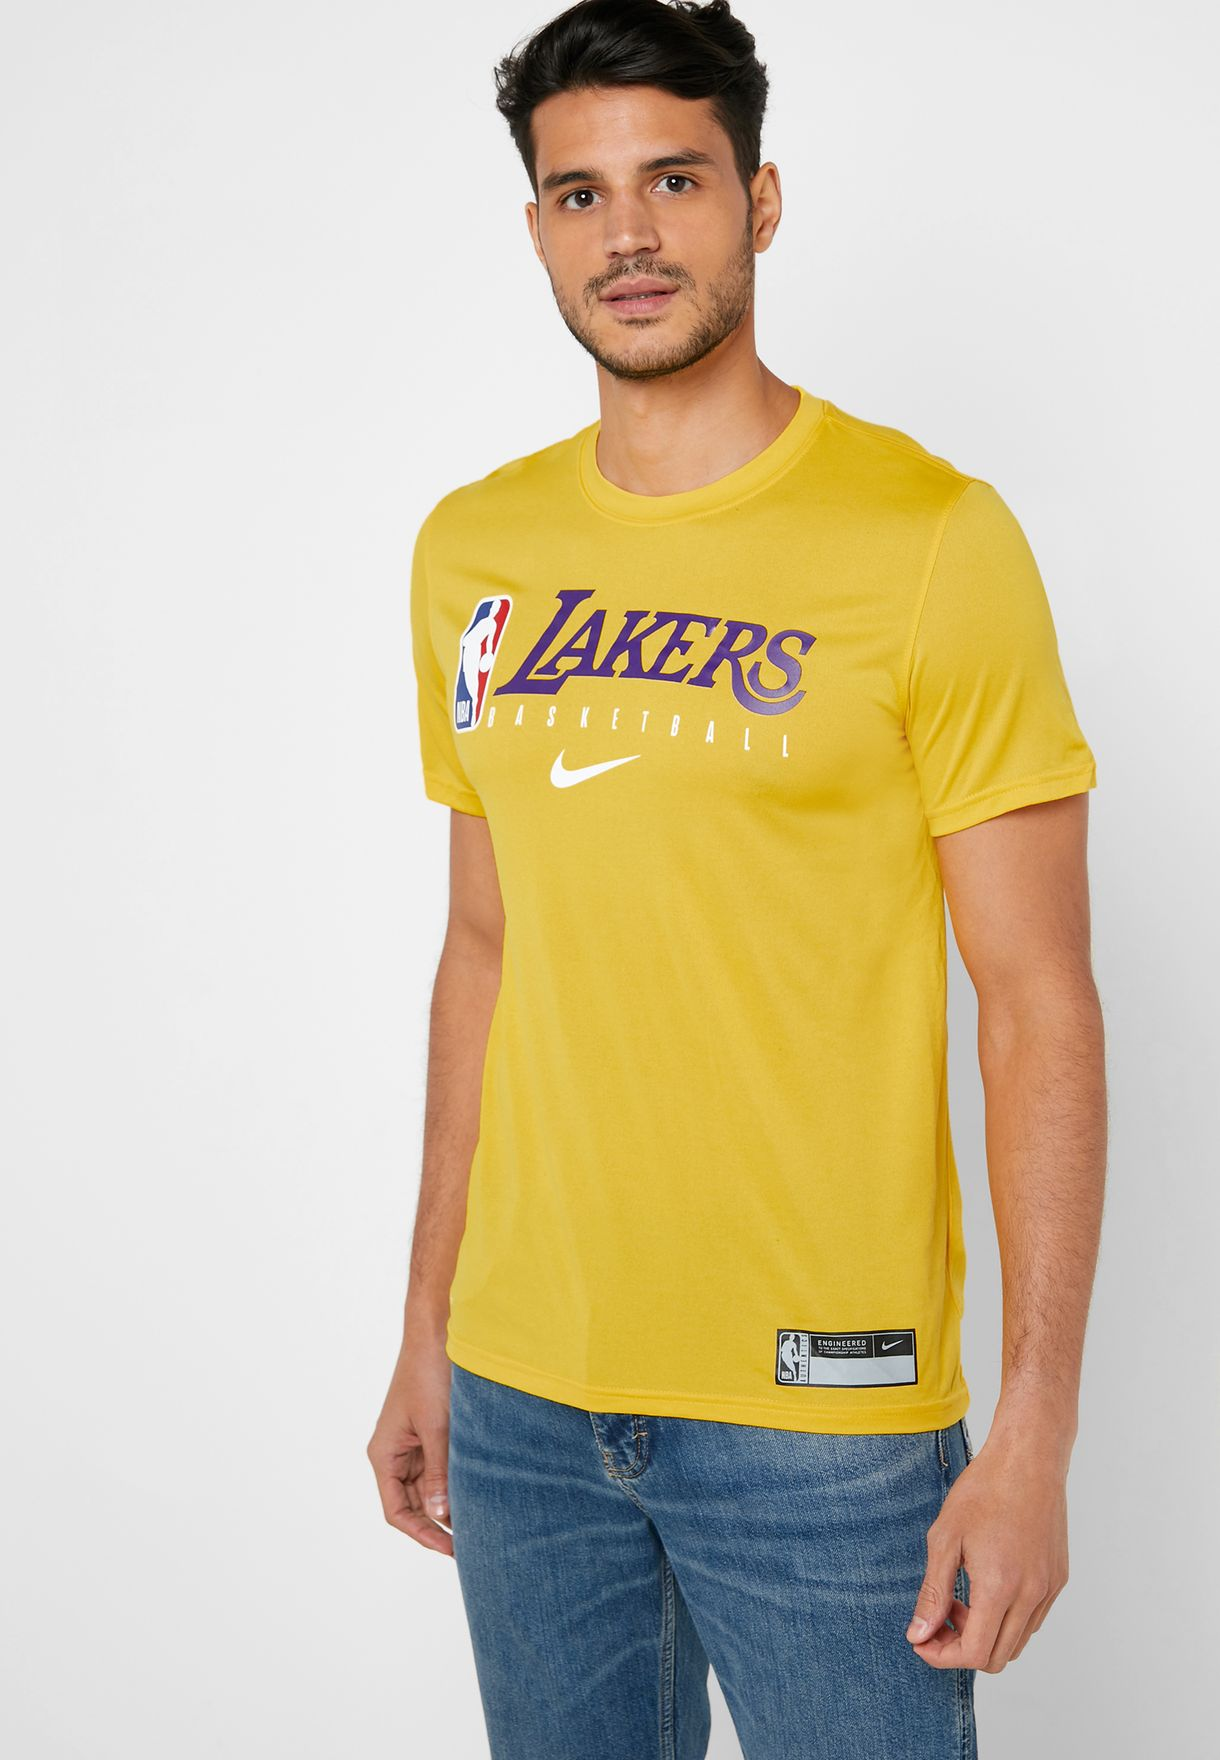 Los Angeles Lakers Graphic T-Shirt